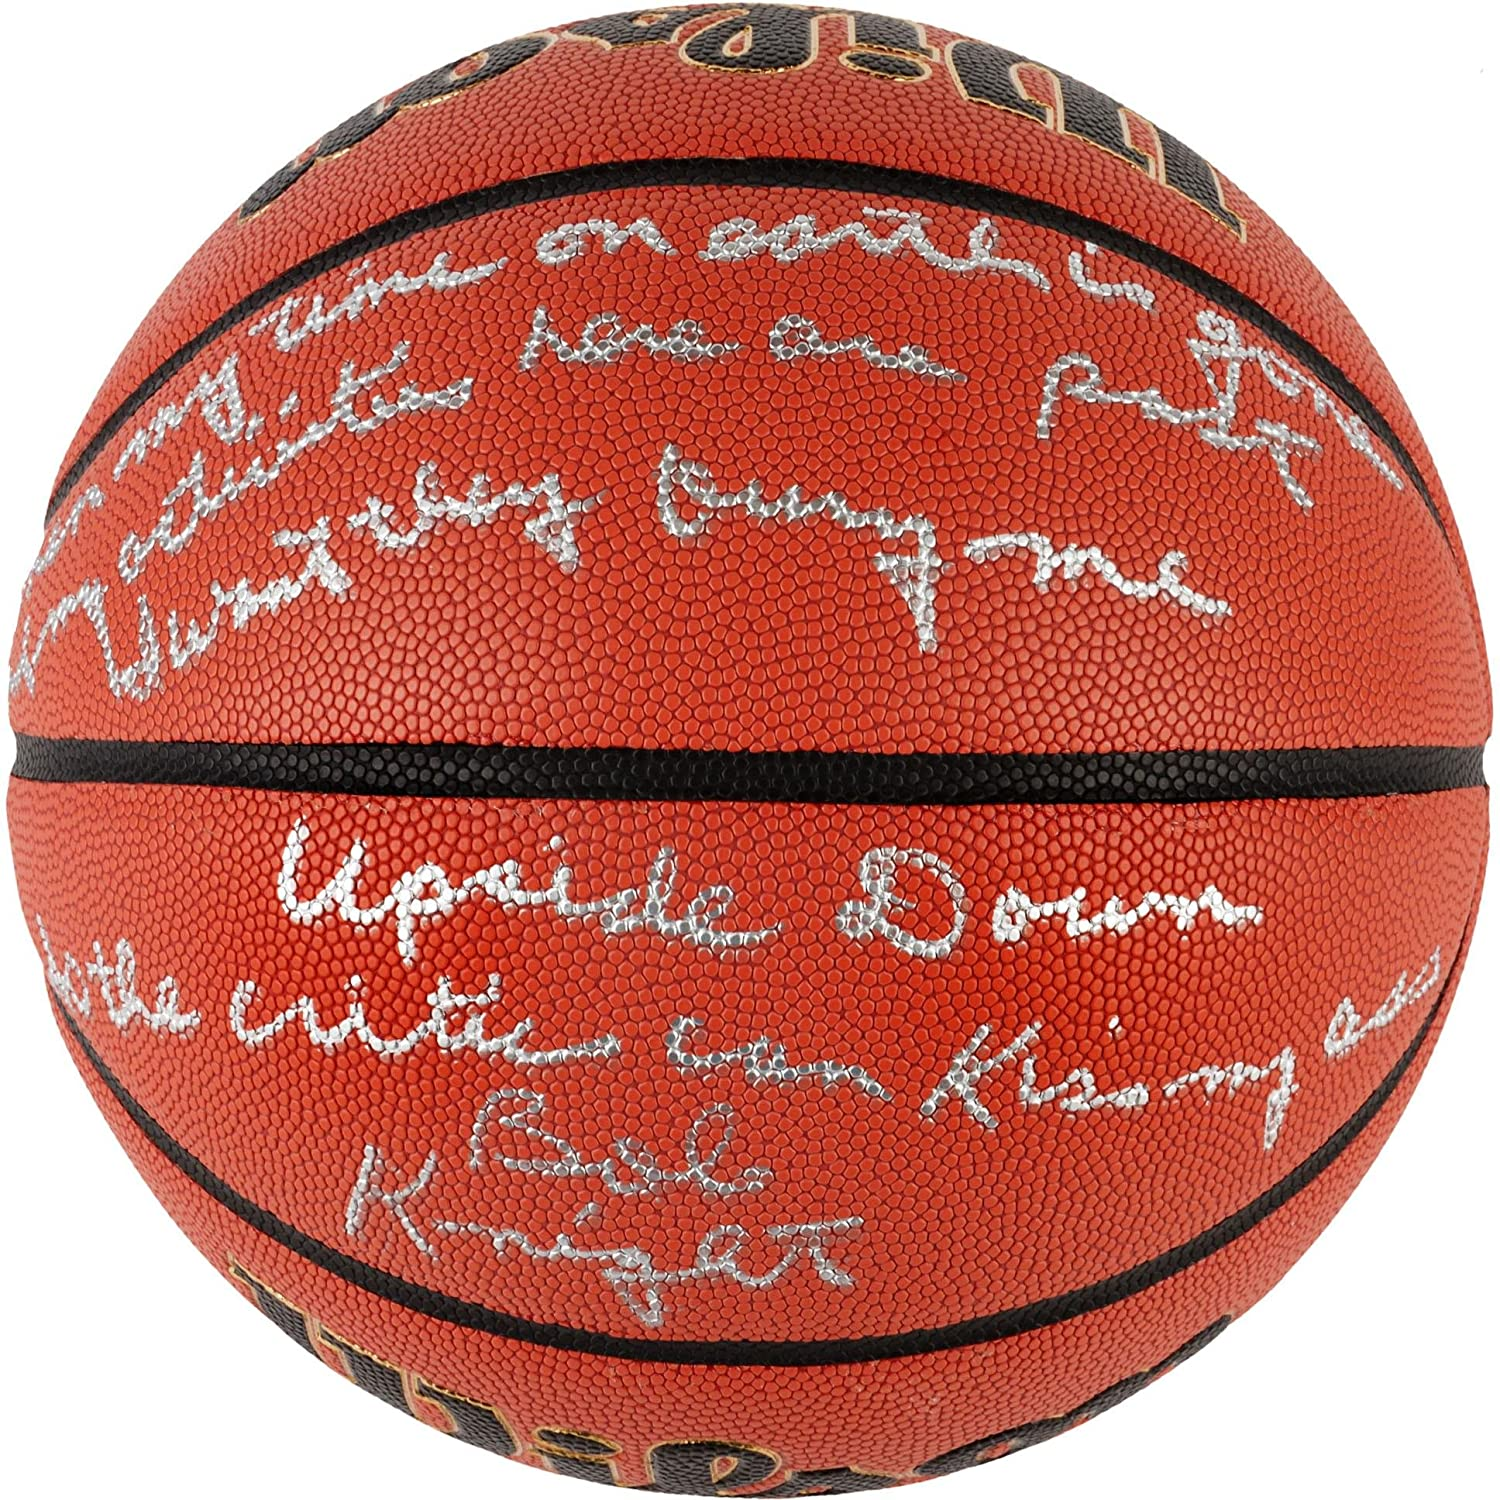 Bobby Knight Indiana Hoosiers Autographed NCAA Game Basketball with Famous Quote Inscription - #2, 4-99 of a Limited Edition of 100 - Fanatics Authentic Certified